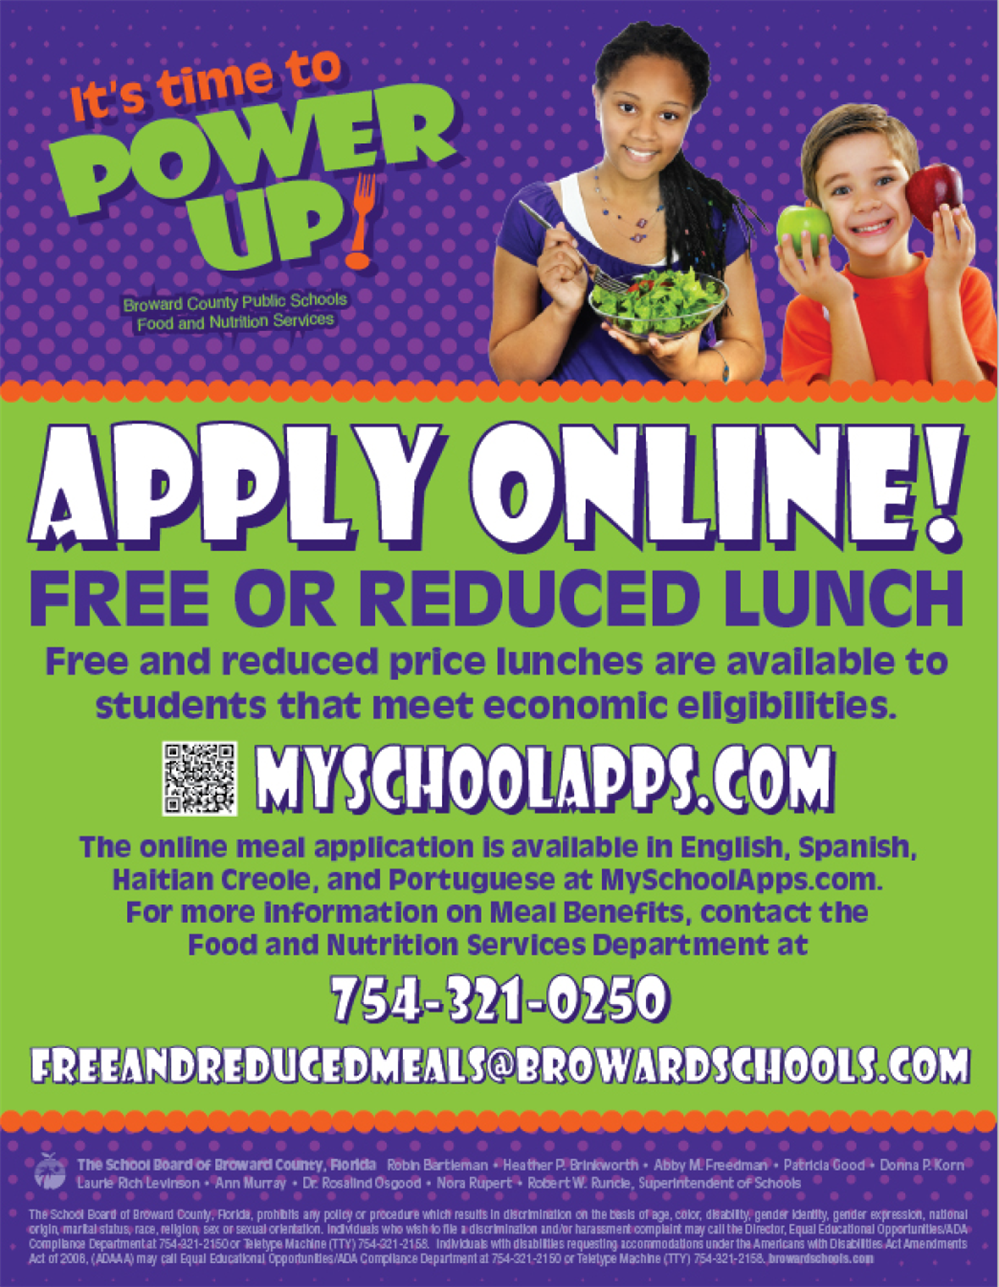 Free or Reduced Lunch Benefits